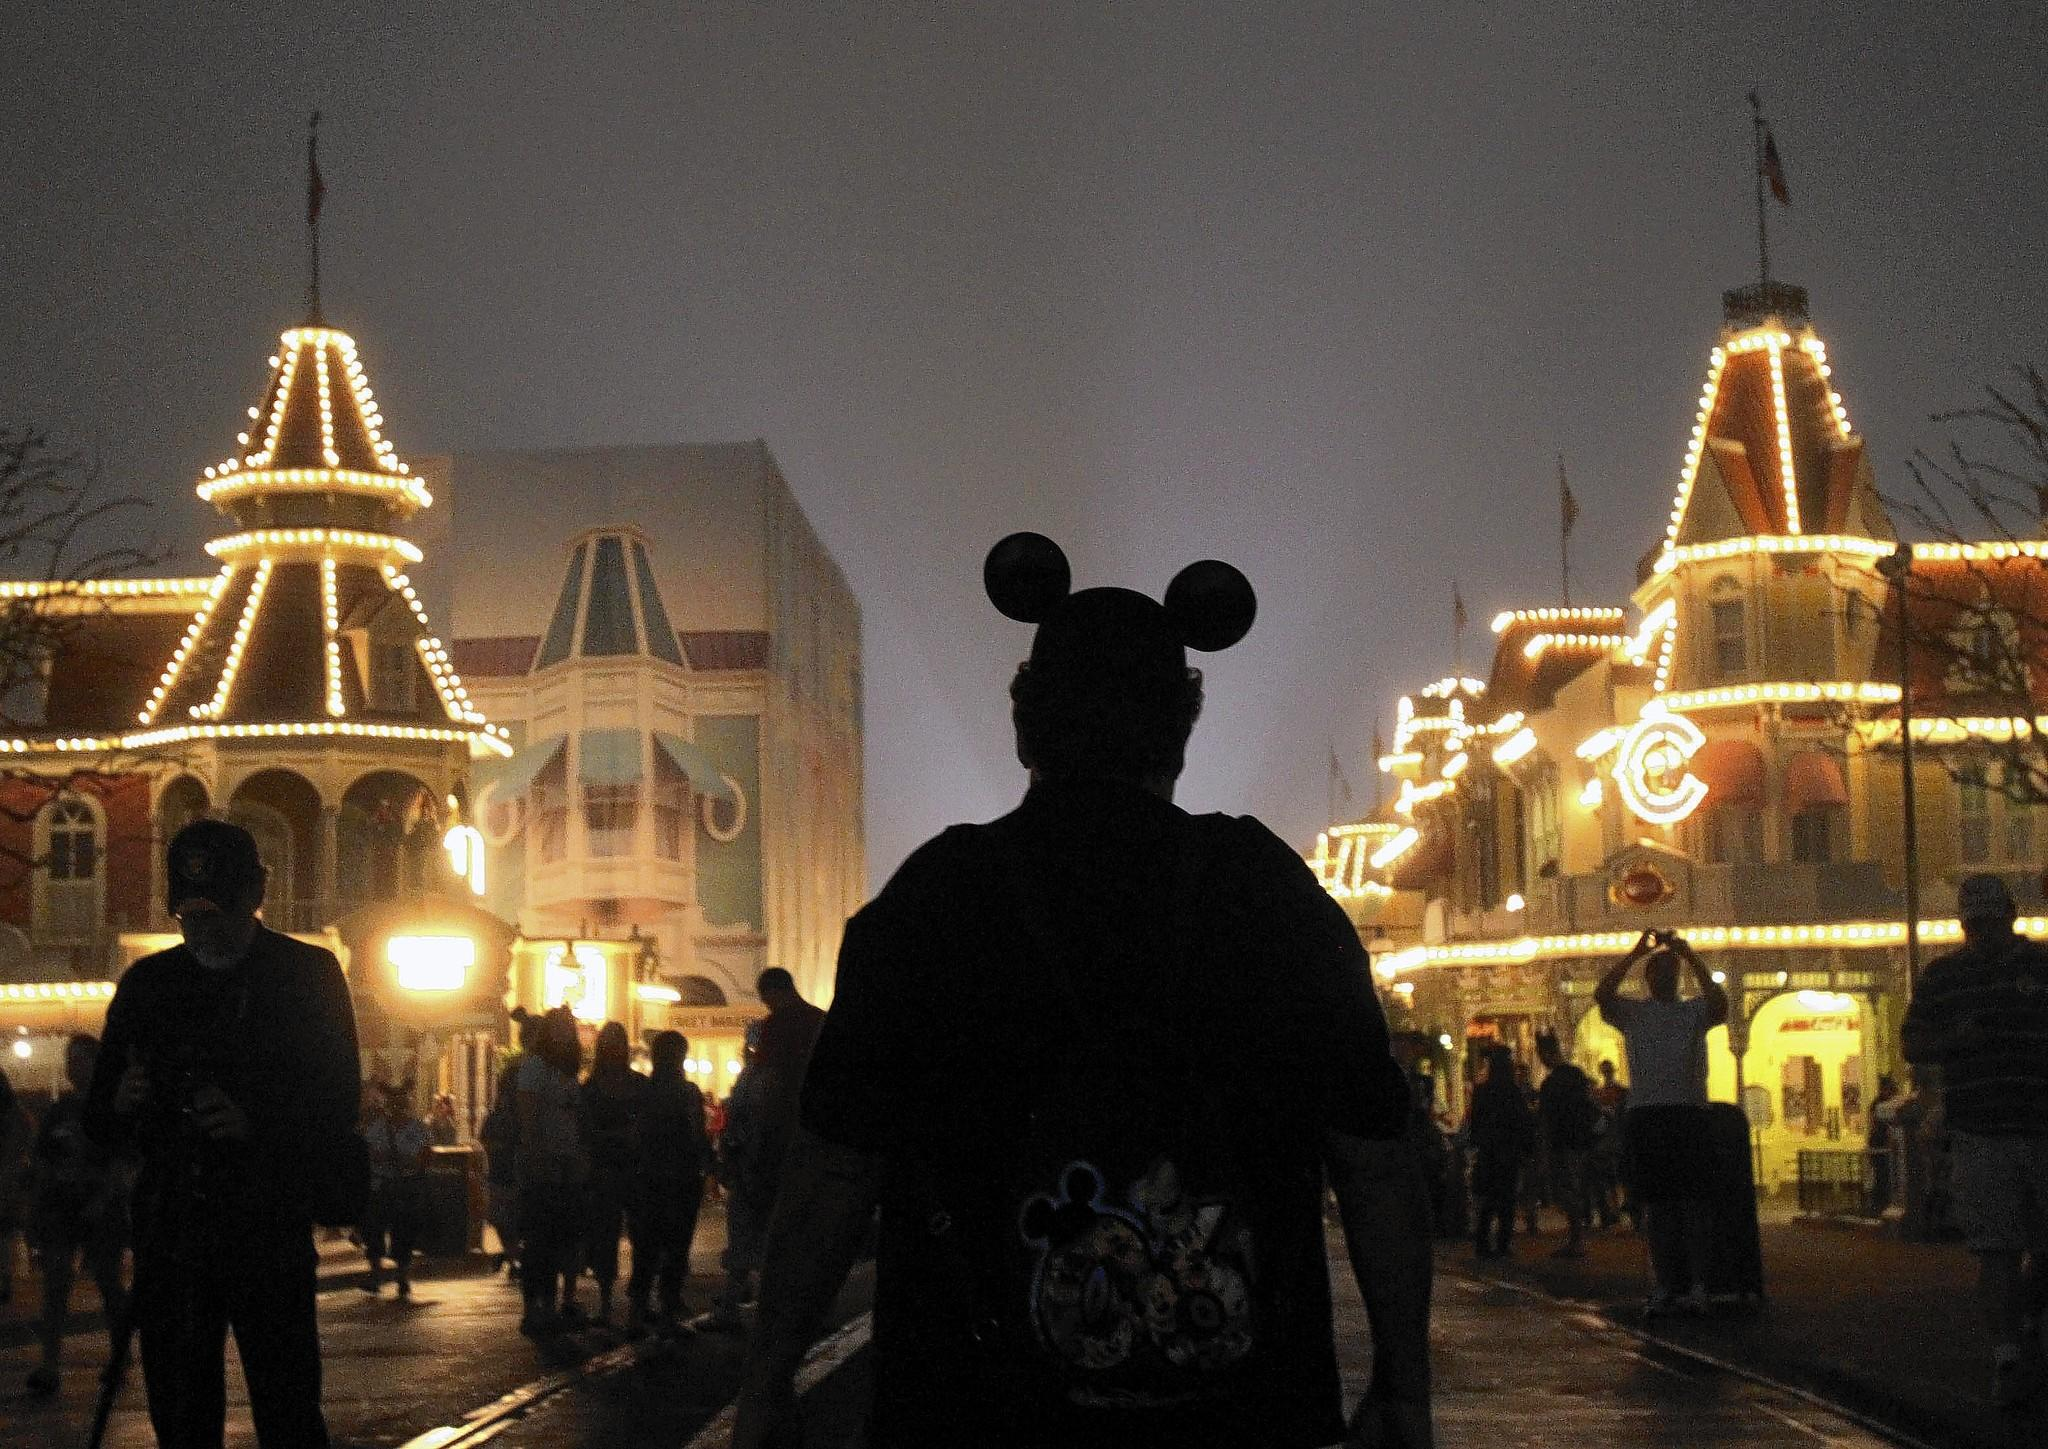 """Back in 2012 for leap year, Disney announced both Orlando's Magic Kingdom and California's Disneyland would open their gates 24 hours straight for the first time. The campaign was called """"One More Disney Day"""" event. Their enthusiasm was mirrored by fellow fans who gathered in the pre-dawn for the celebration's kickoff and amplified across the Internet, where blogs, tweets and Facebook updates let those without the means -- or stamina -- to virtually get in on the action."""